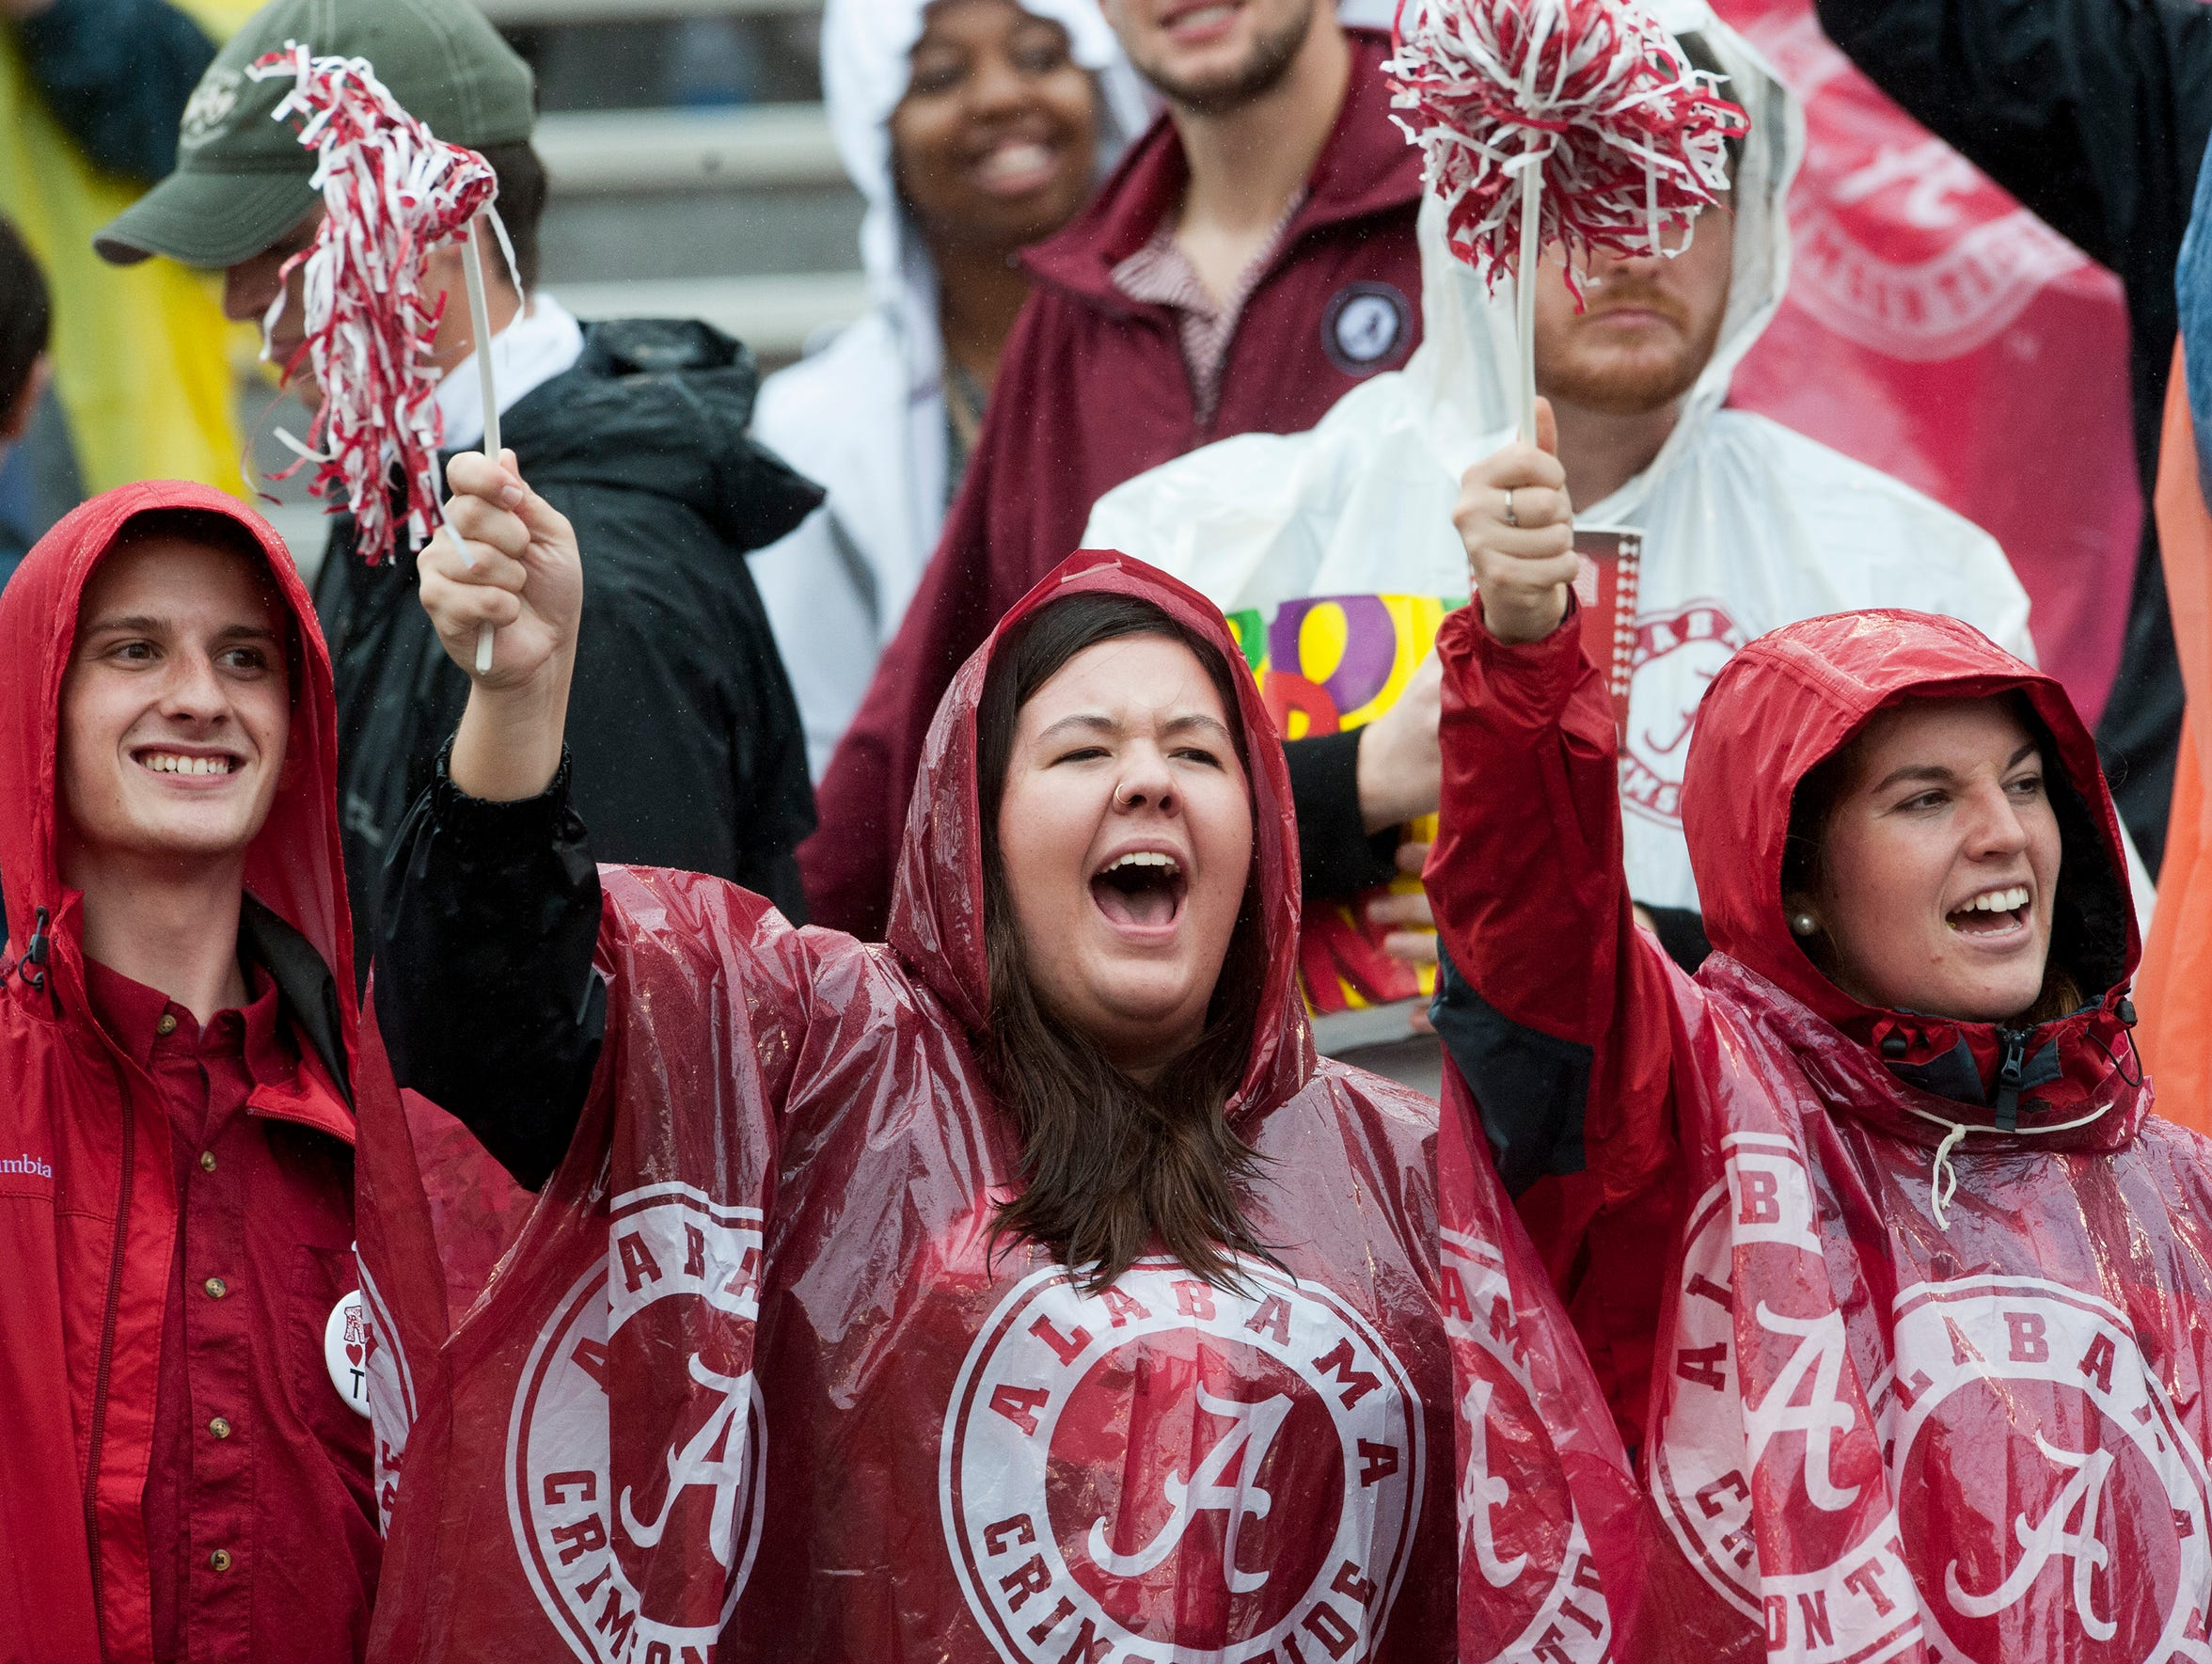 Alabama fans cheer as the team takes the field for